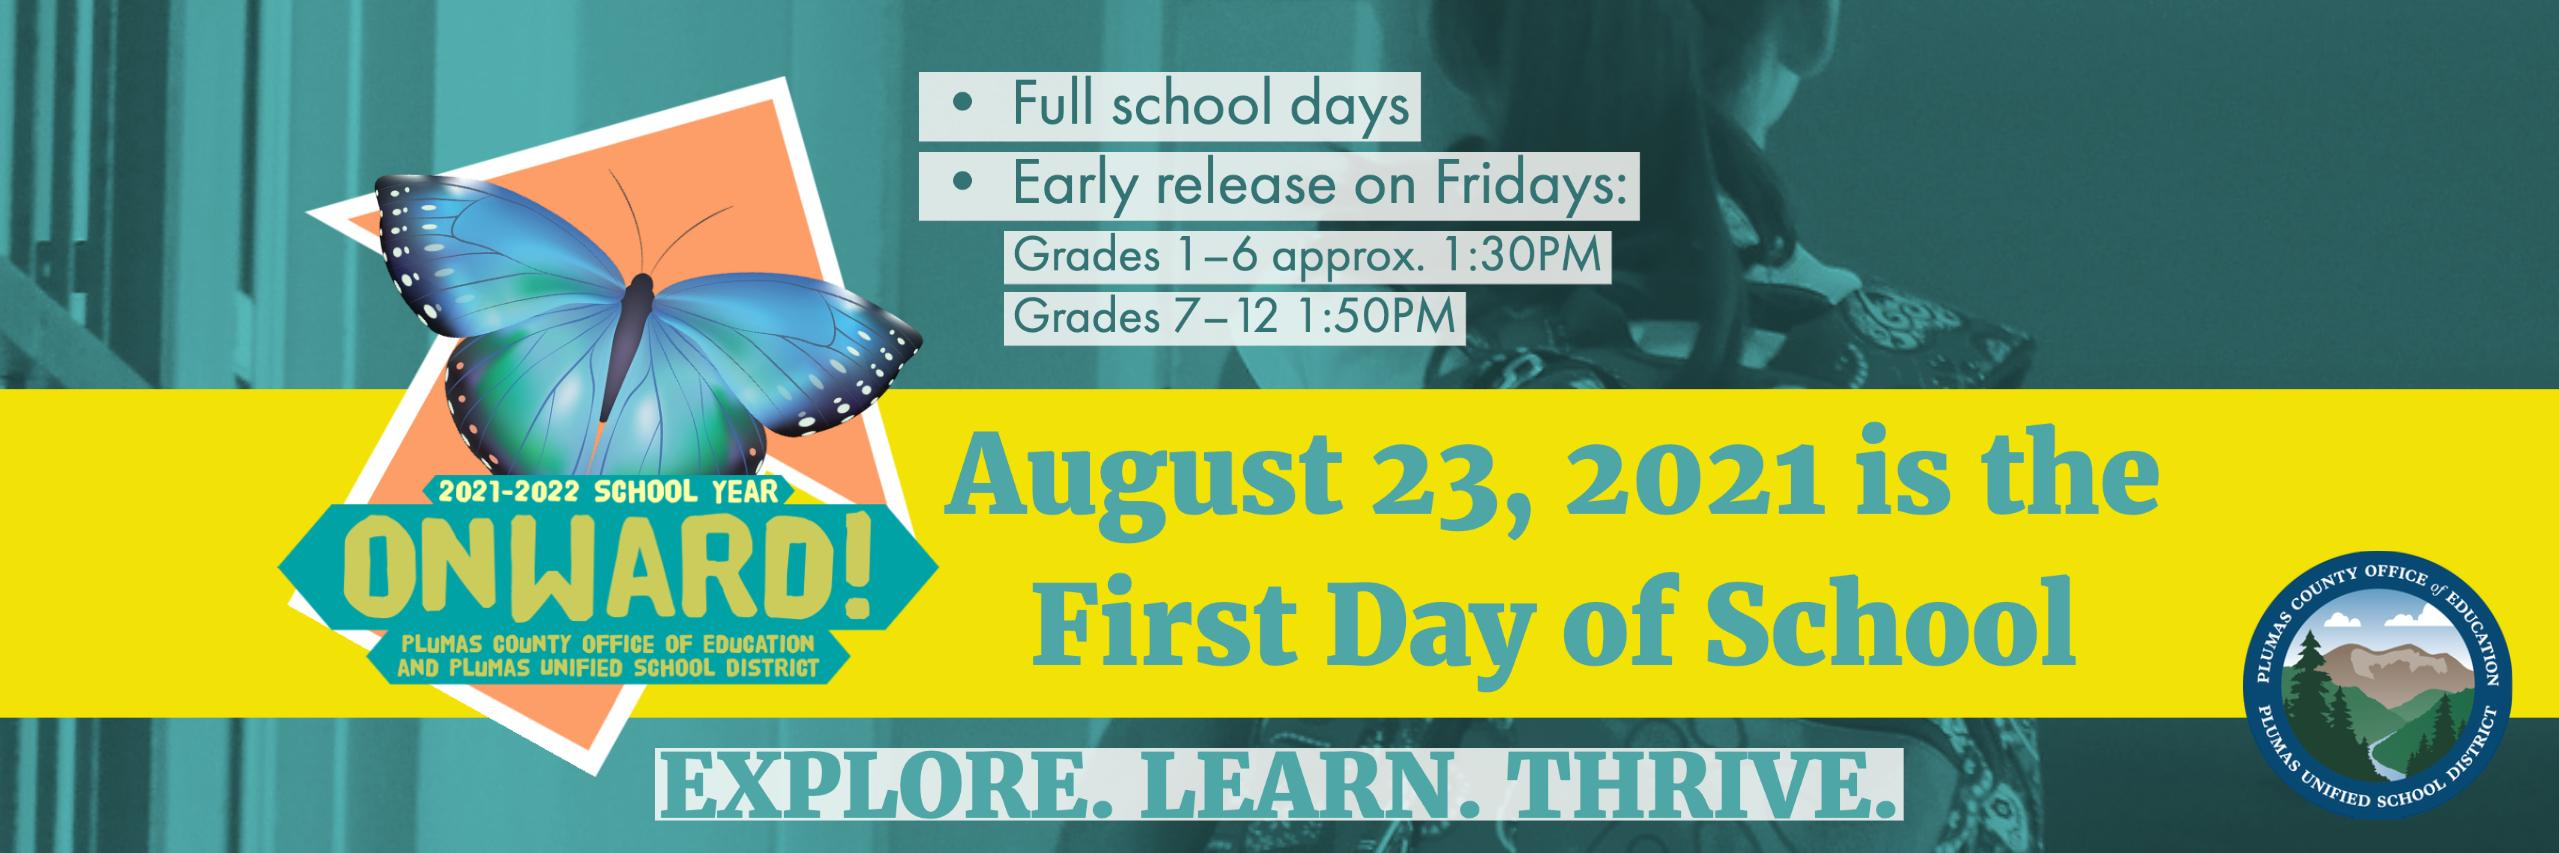 First day of school is August 23 2021